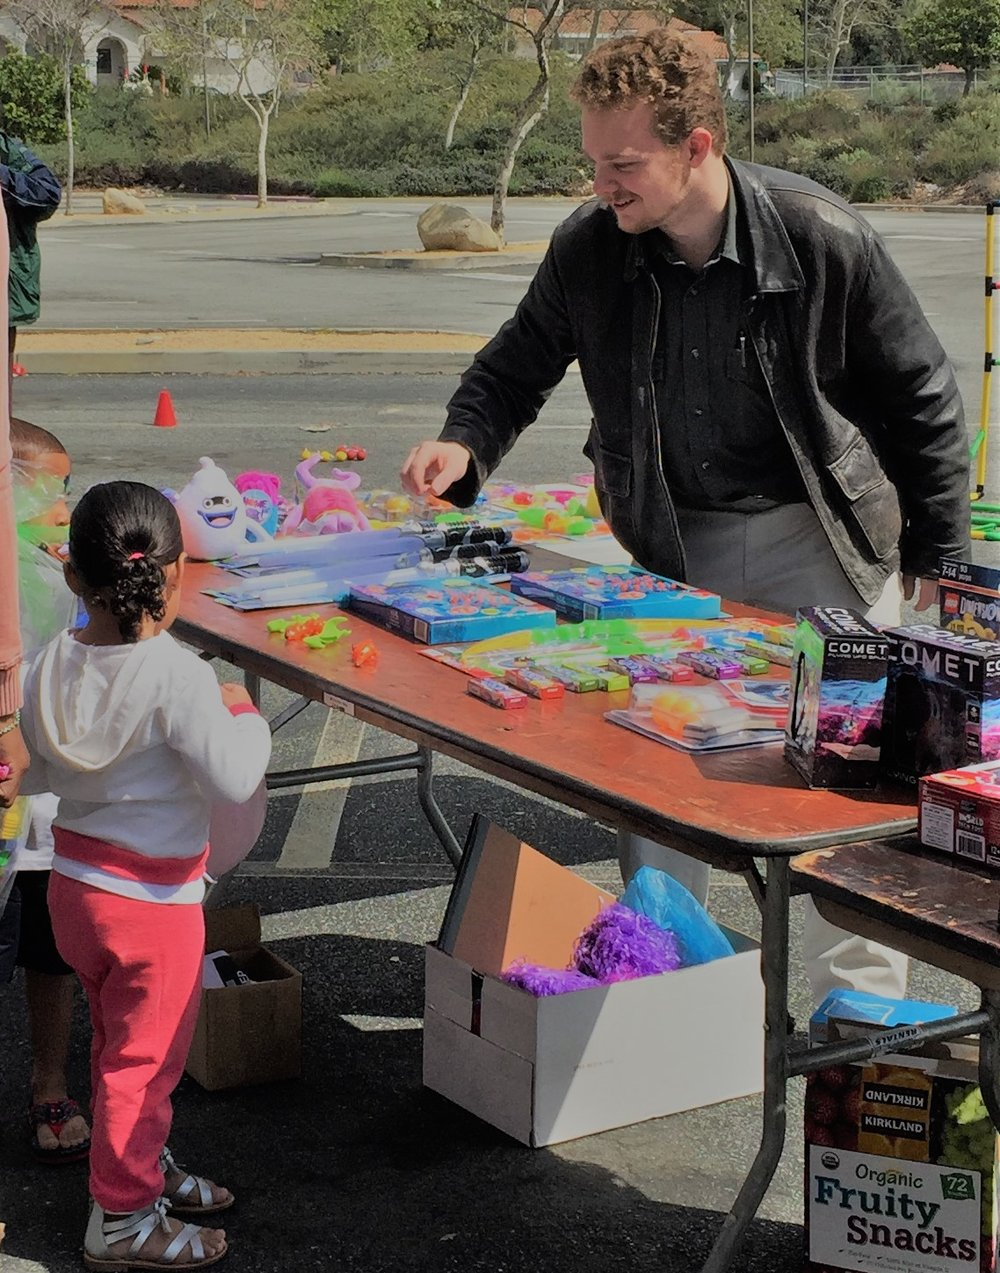 A volunteer handing out free toys for the kids